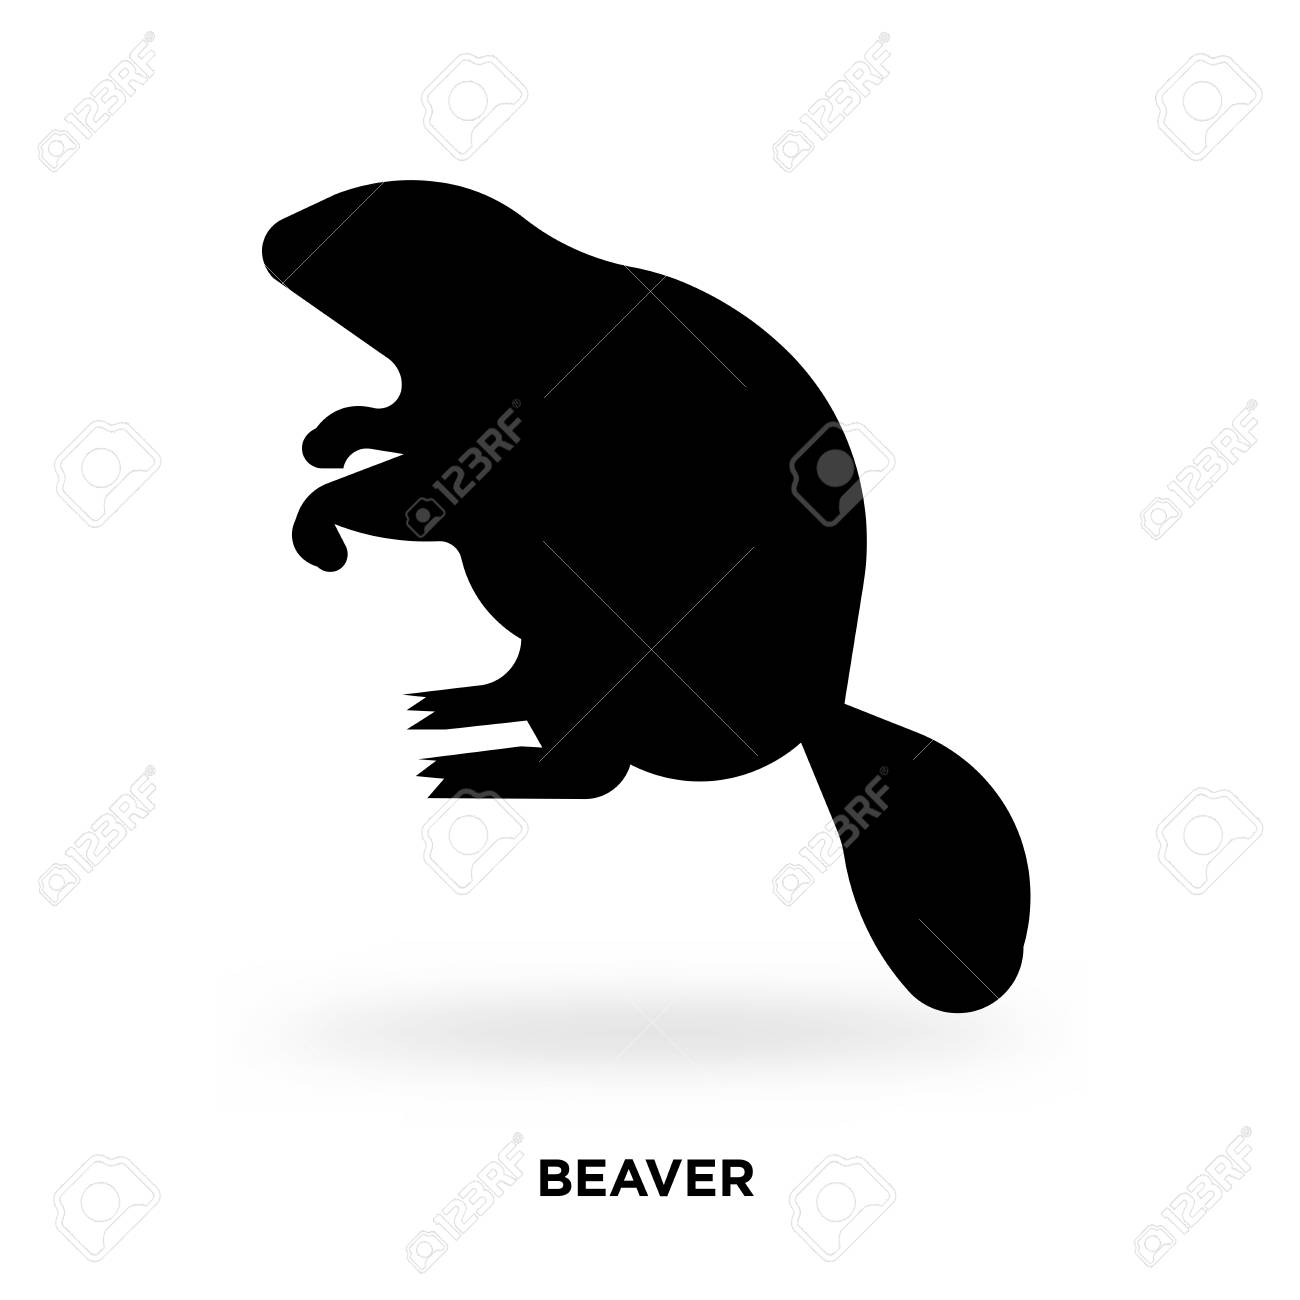 beaver silhouette Vector illustration..